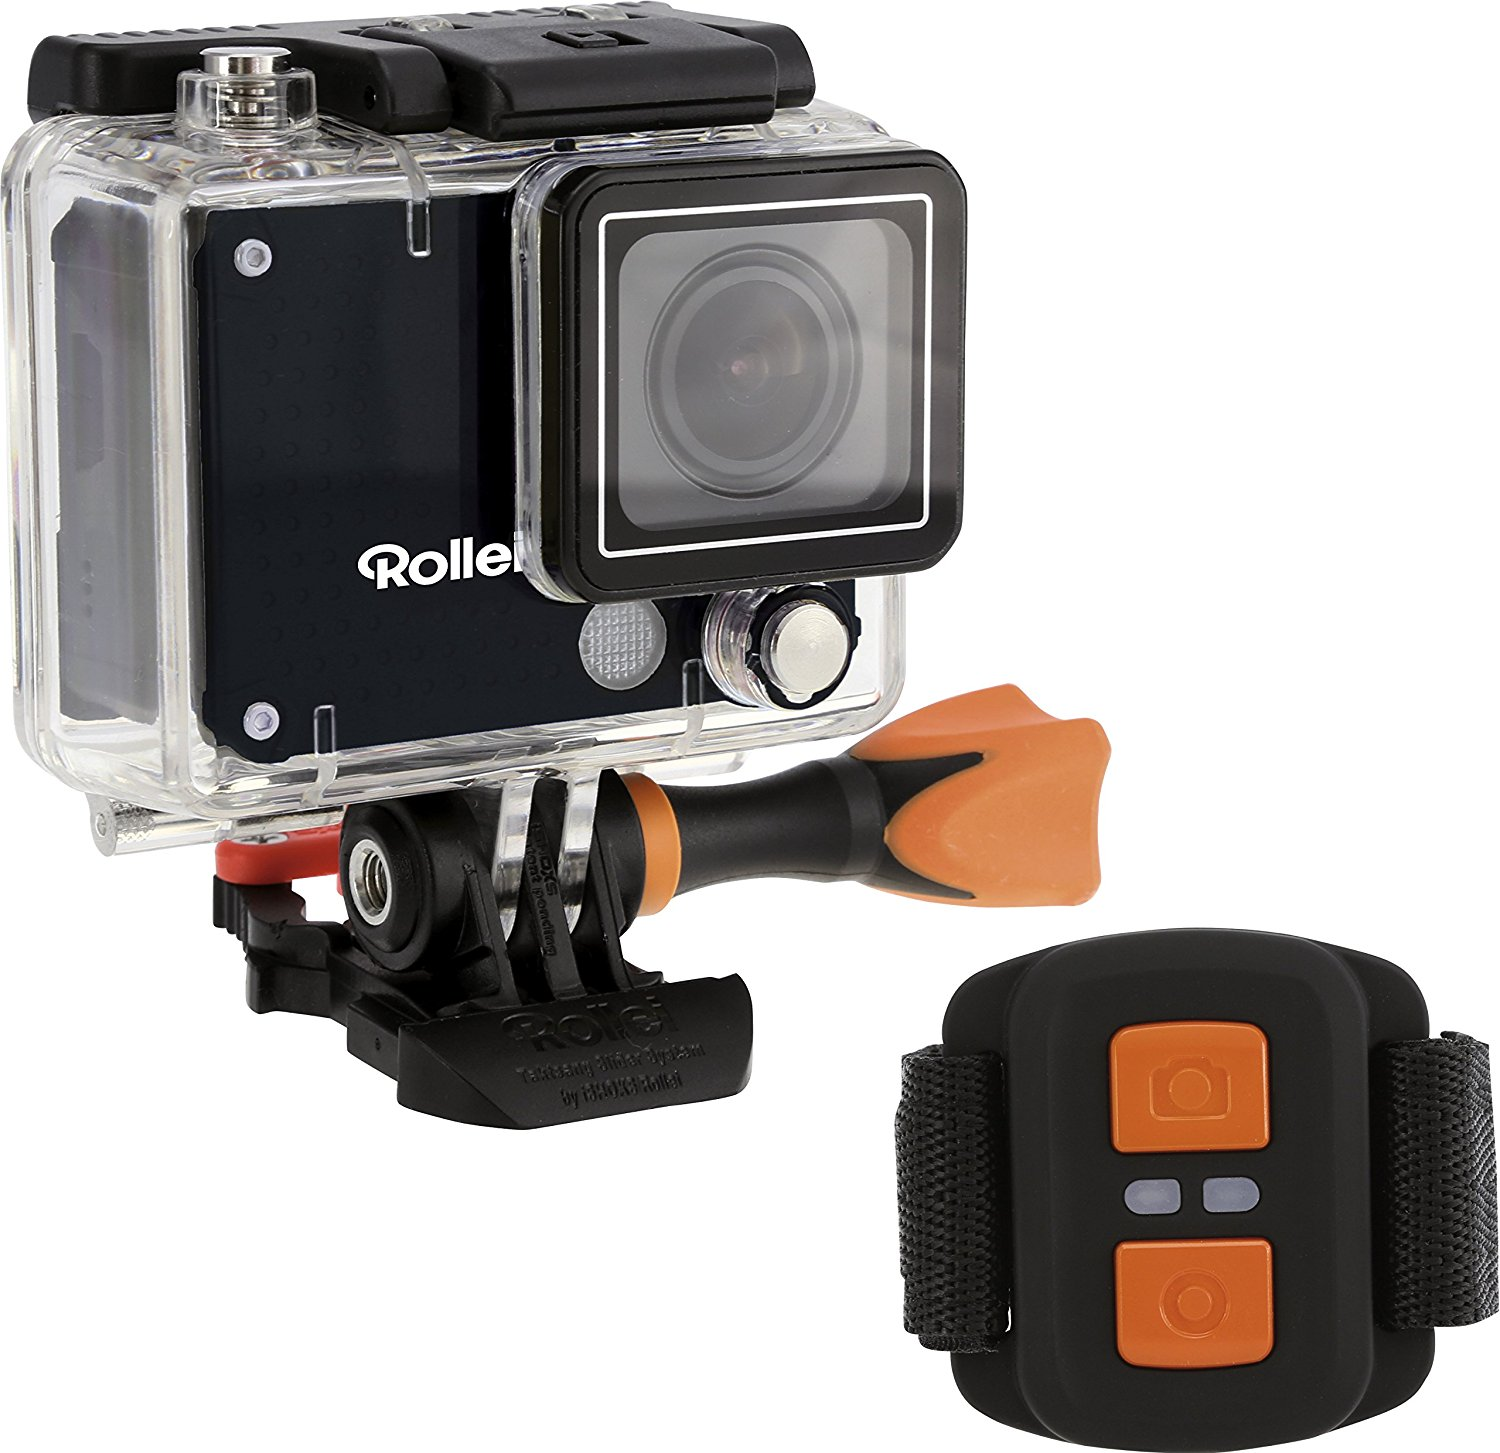 Best GoPro Alternatives Action Camera - Best Action Cameras that are Great Alternatives to GoPro